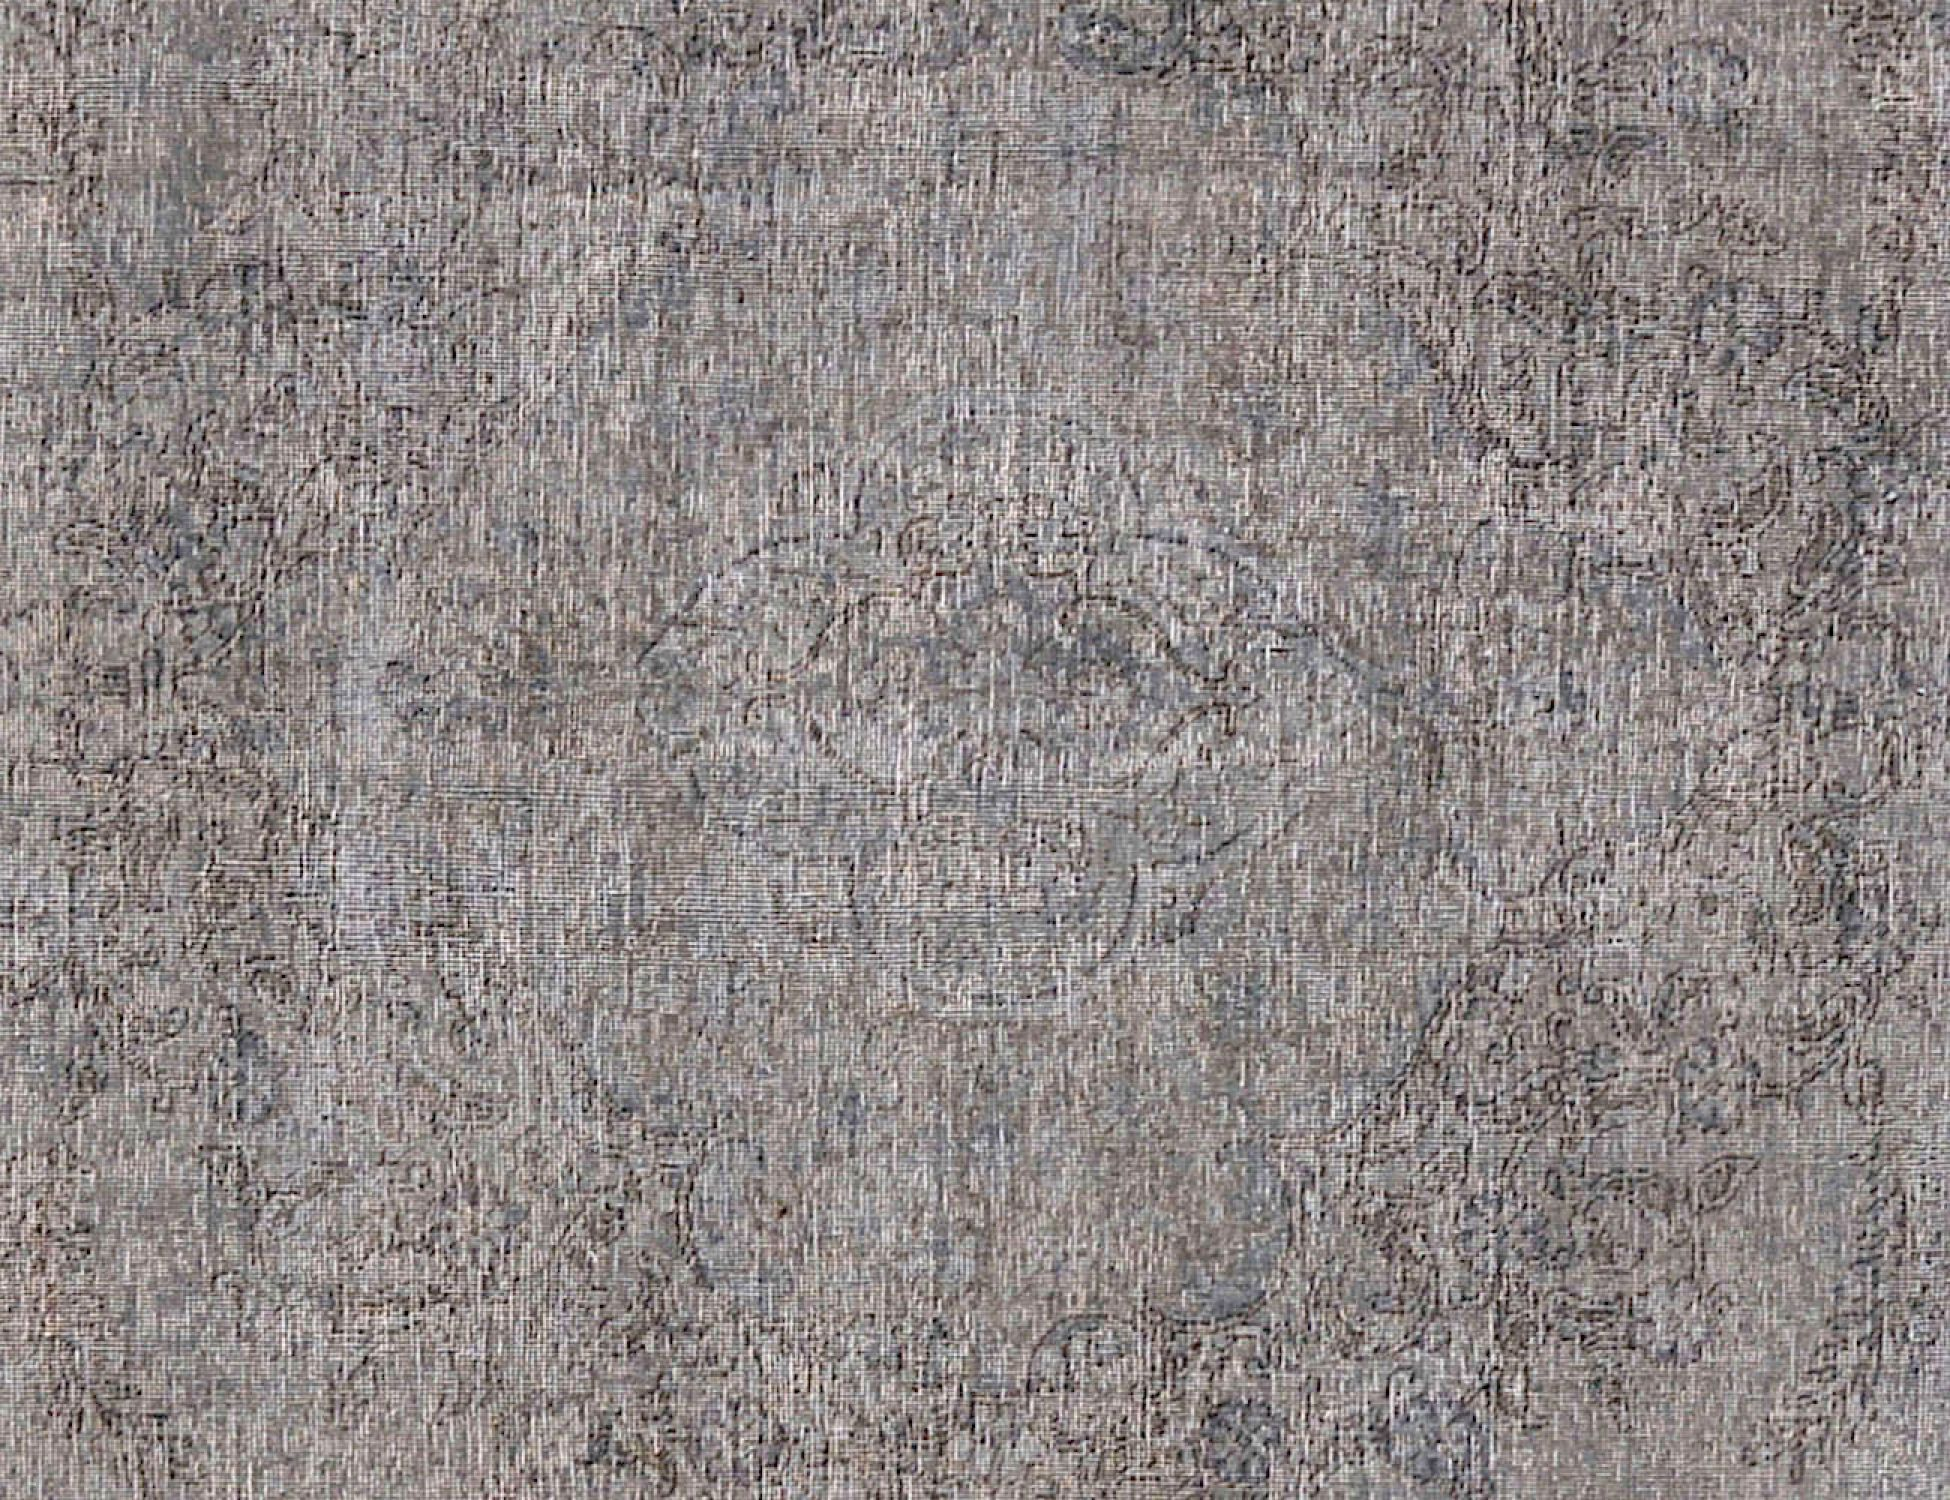 Vintage Carpet  grey <br/>389 x 281 cm